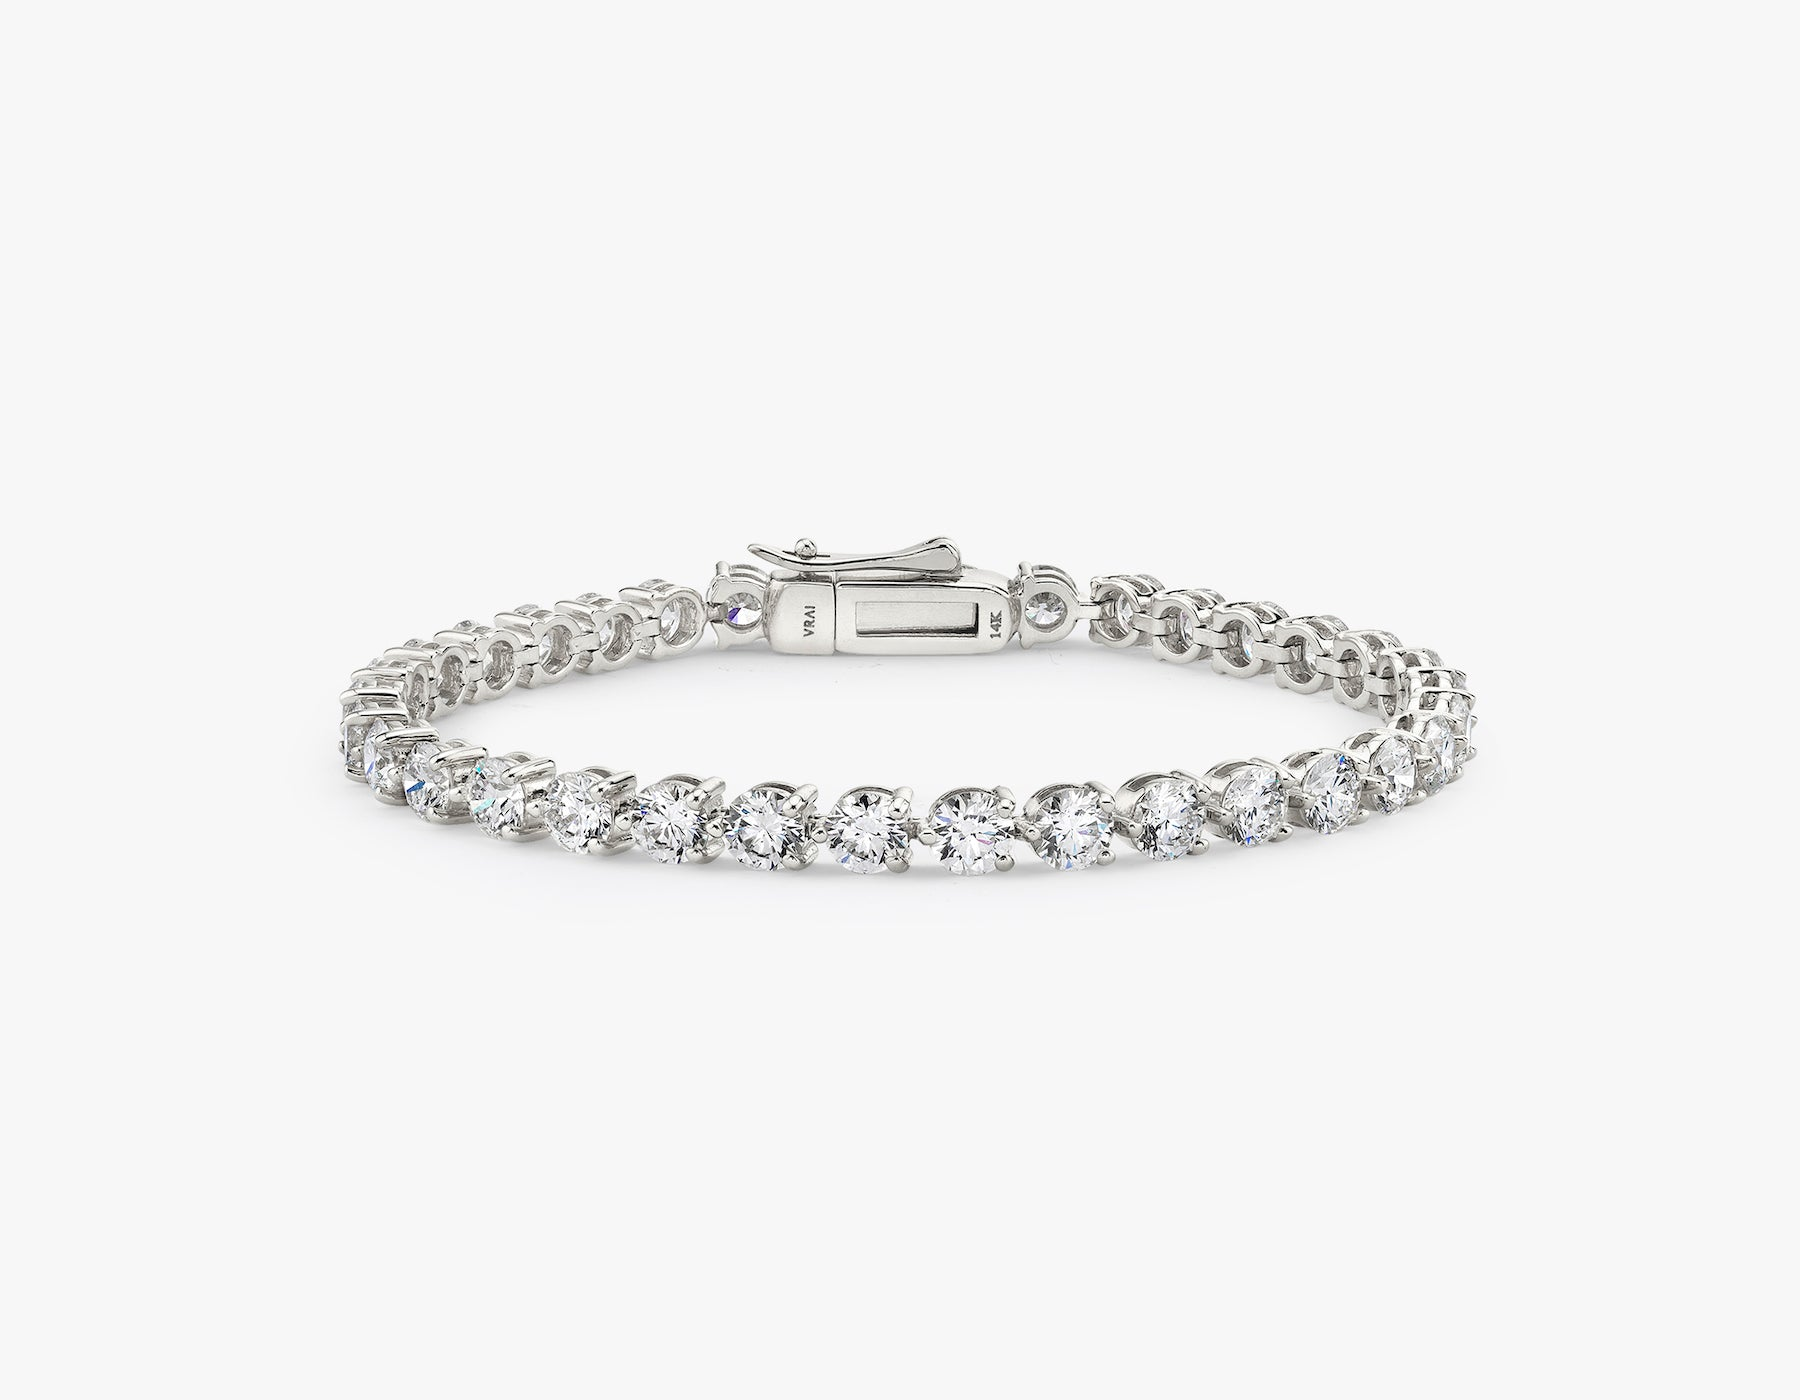 Vrai simple elegant Round Brilliant Diamond Tennis Bracelet with .25ct stone, 14K White Gold